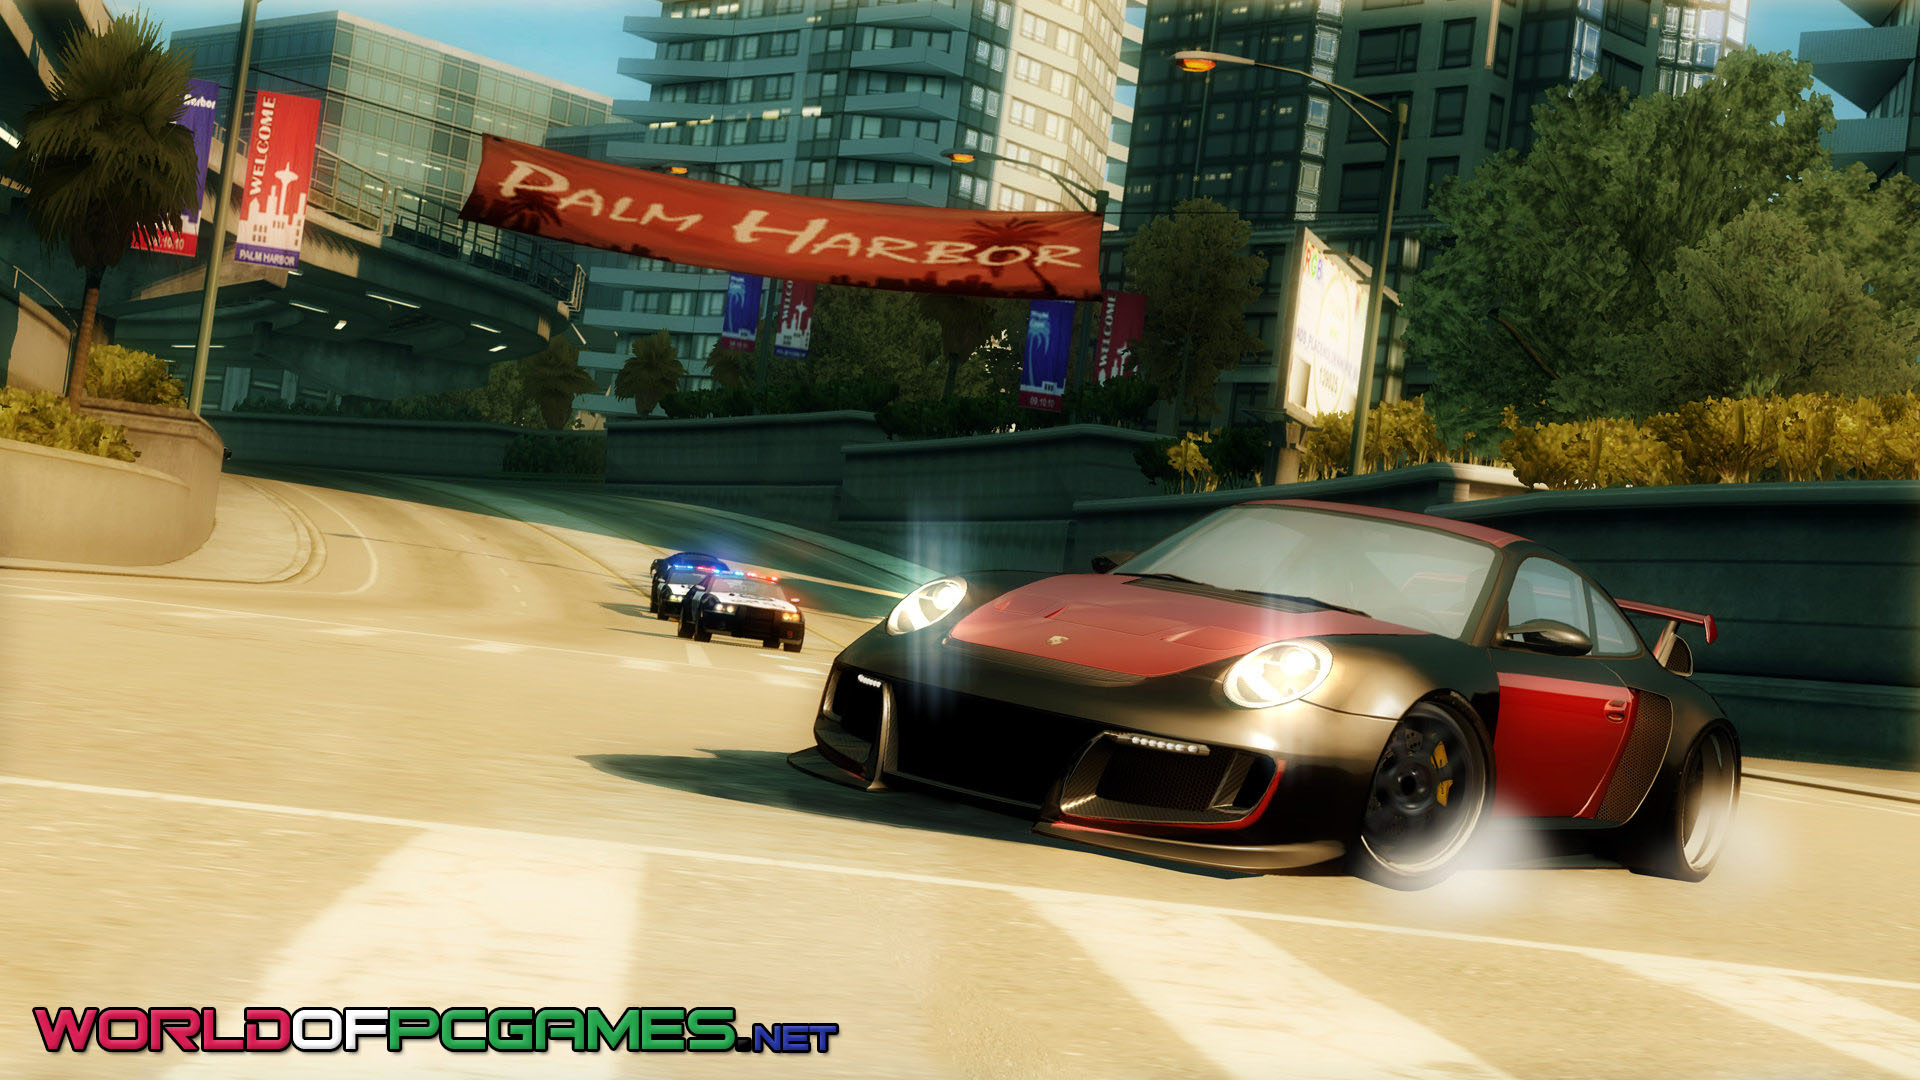 Need For Speed Undercover Free Download By Worldofpcgames.net 2 - Need For Speed Undercover Download Free